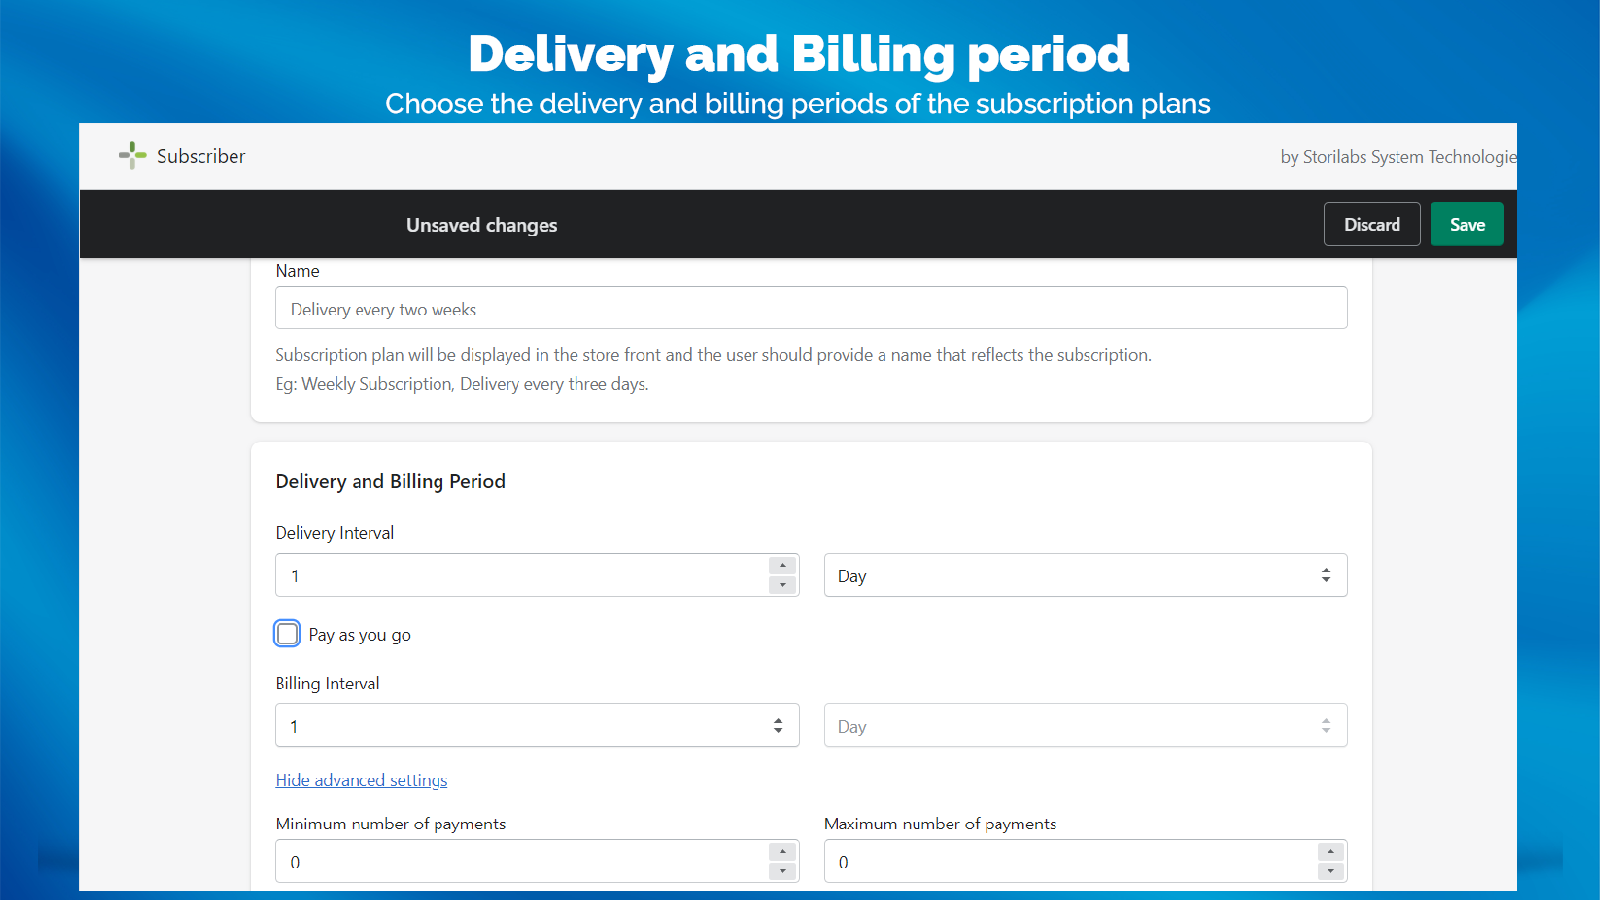 Customizable Billing and Delivery